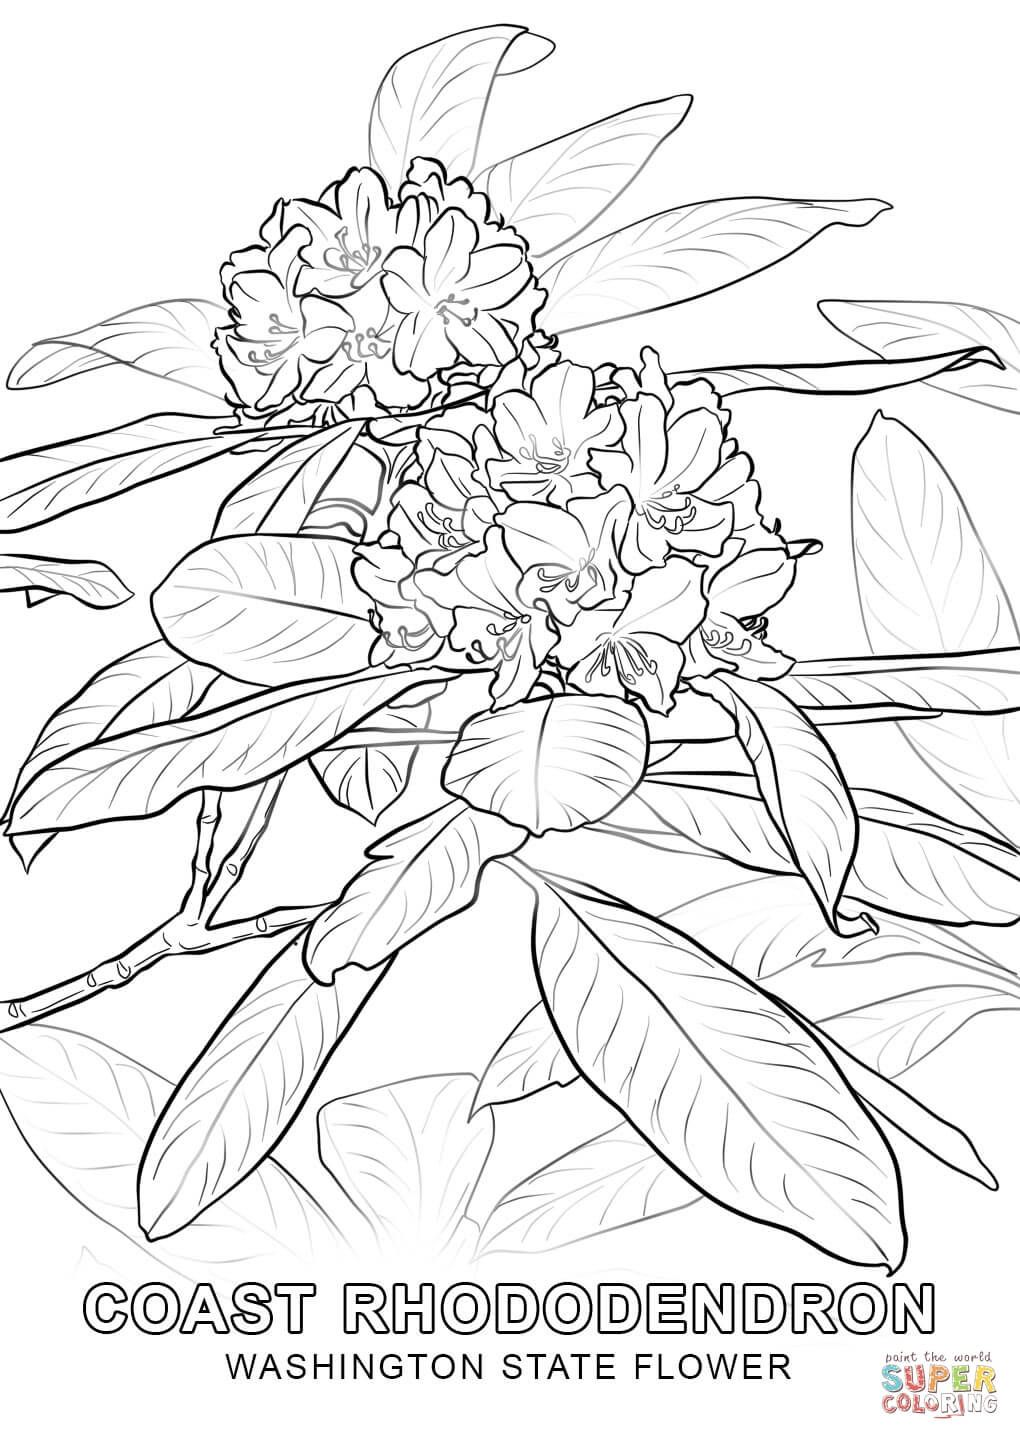 Washington State Flower Coloring Page Free Printable Coloring